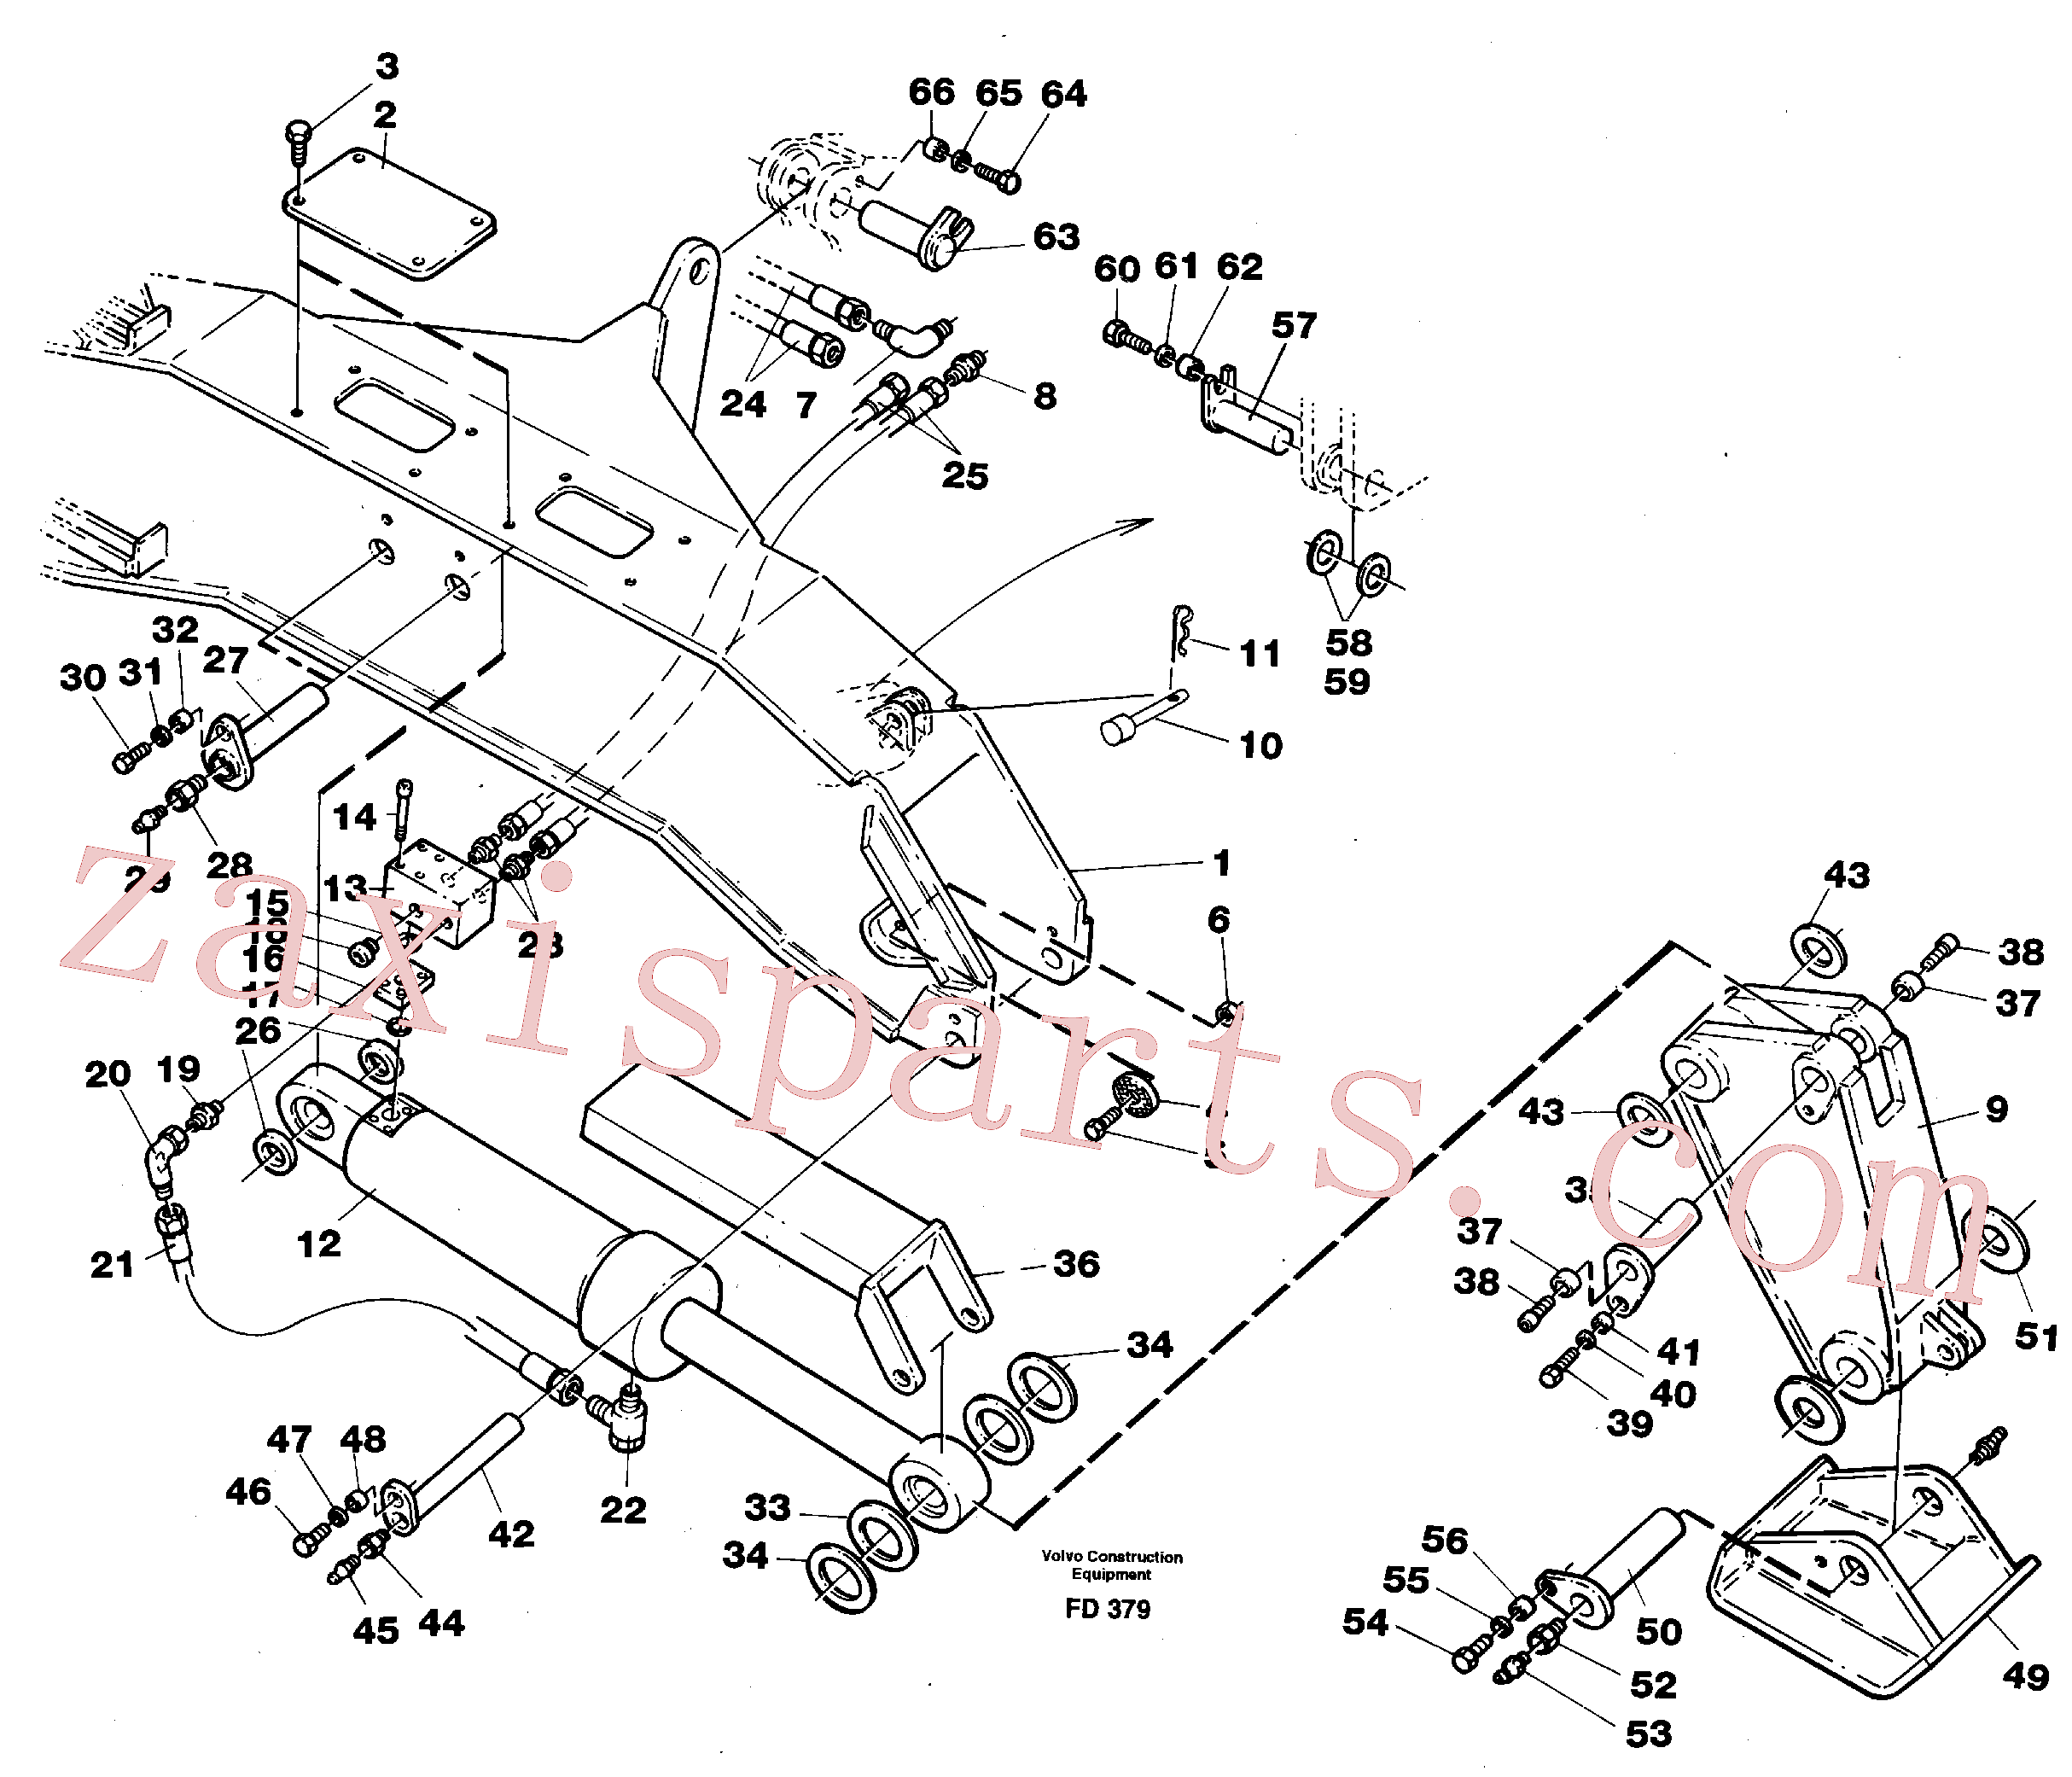 VOE14235651 for Volvo Stabilisors flexible plates(FD379 assembly)